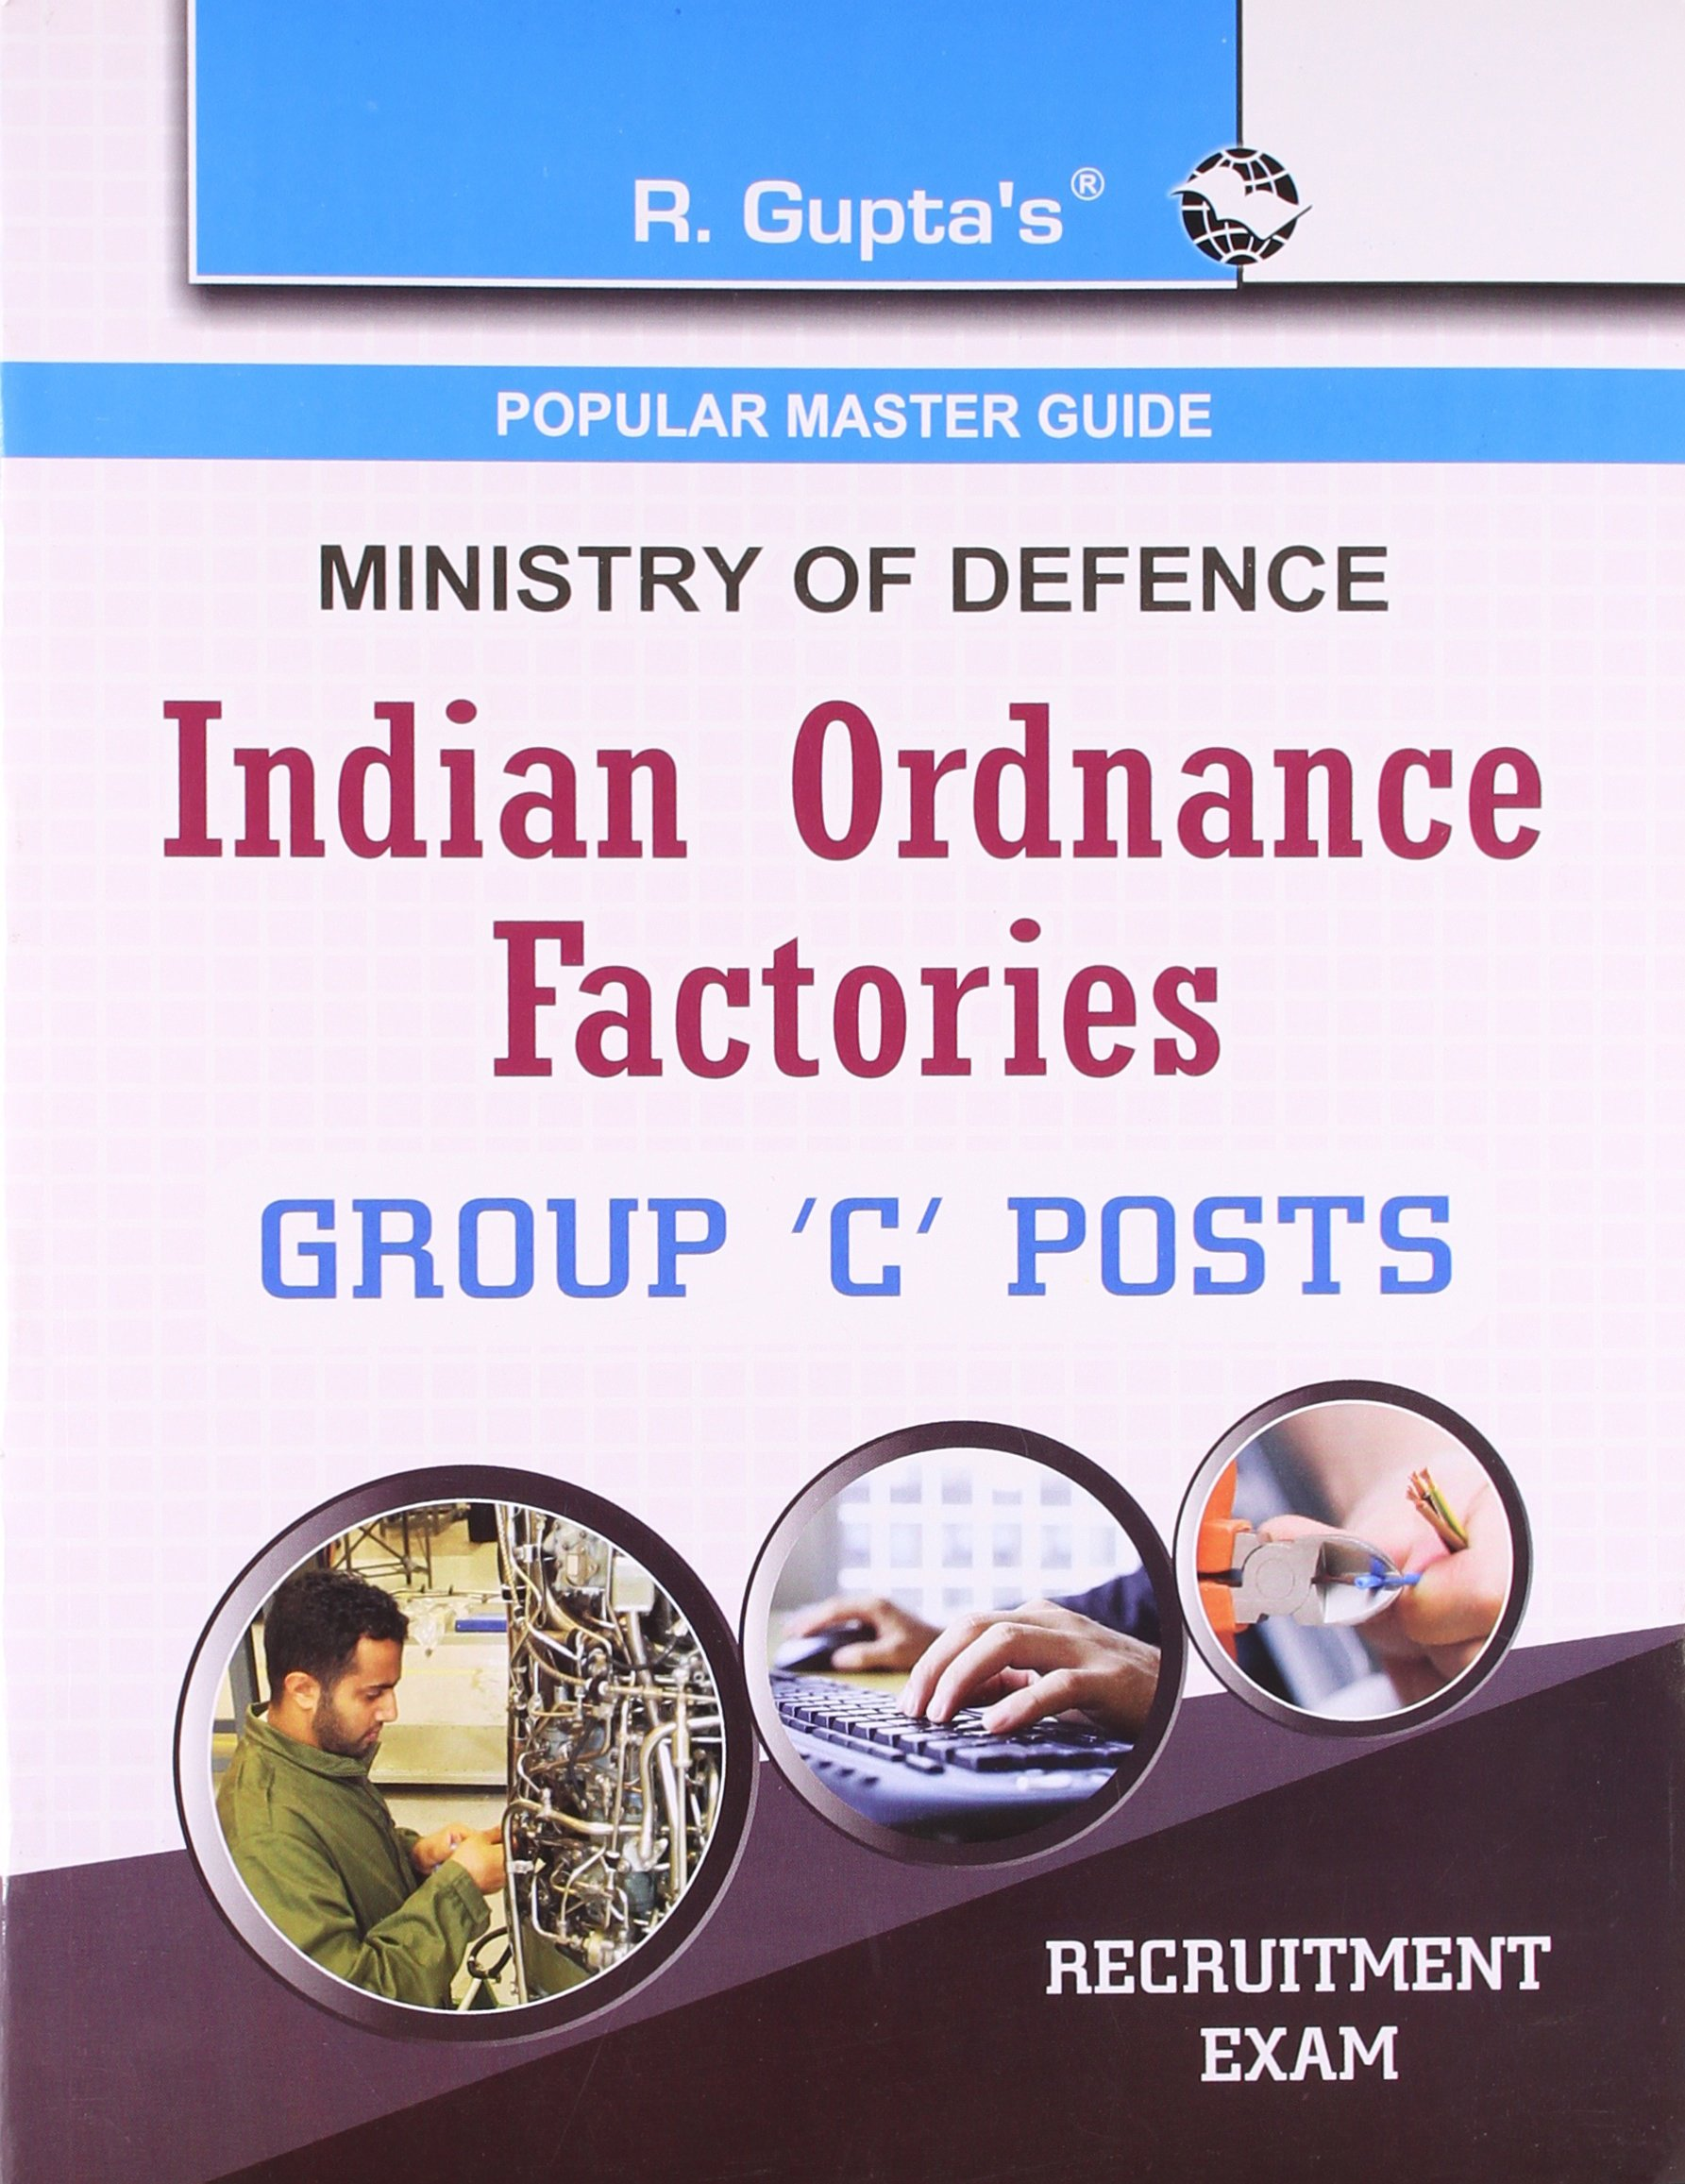 Buy indian ordnance factories group c posts recruitment exam buy indian ordnance factories group c posts recruitment exam guide group c recruitment exam guide book online at low prices in india indian fandeluxe Gallery